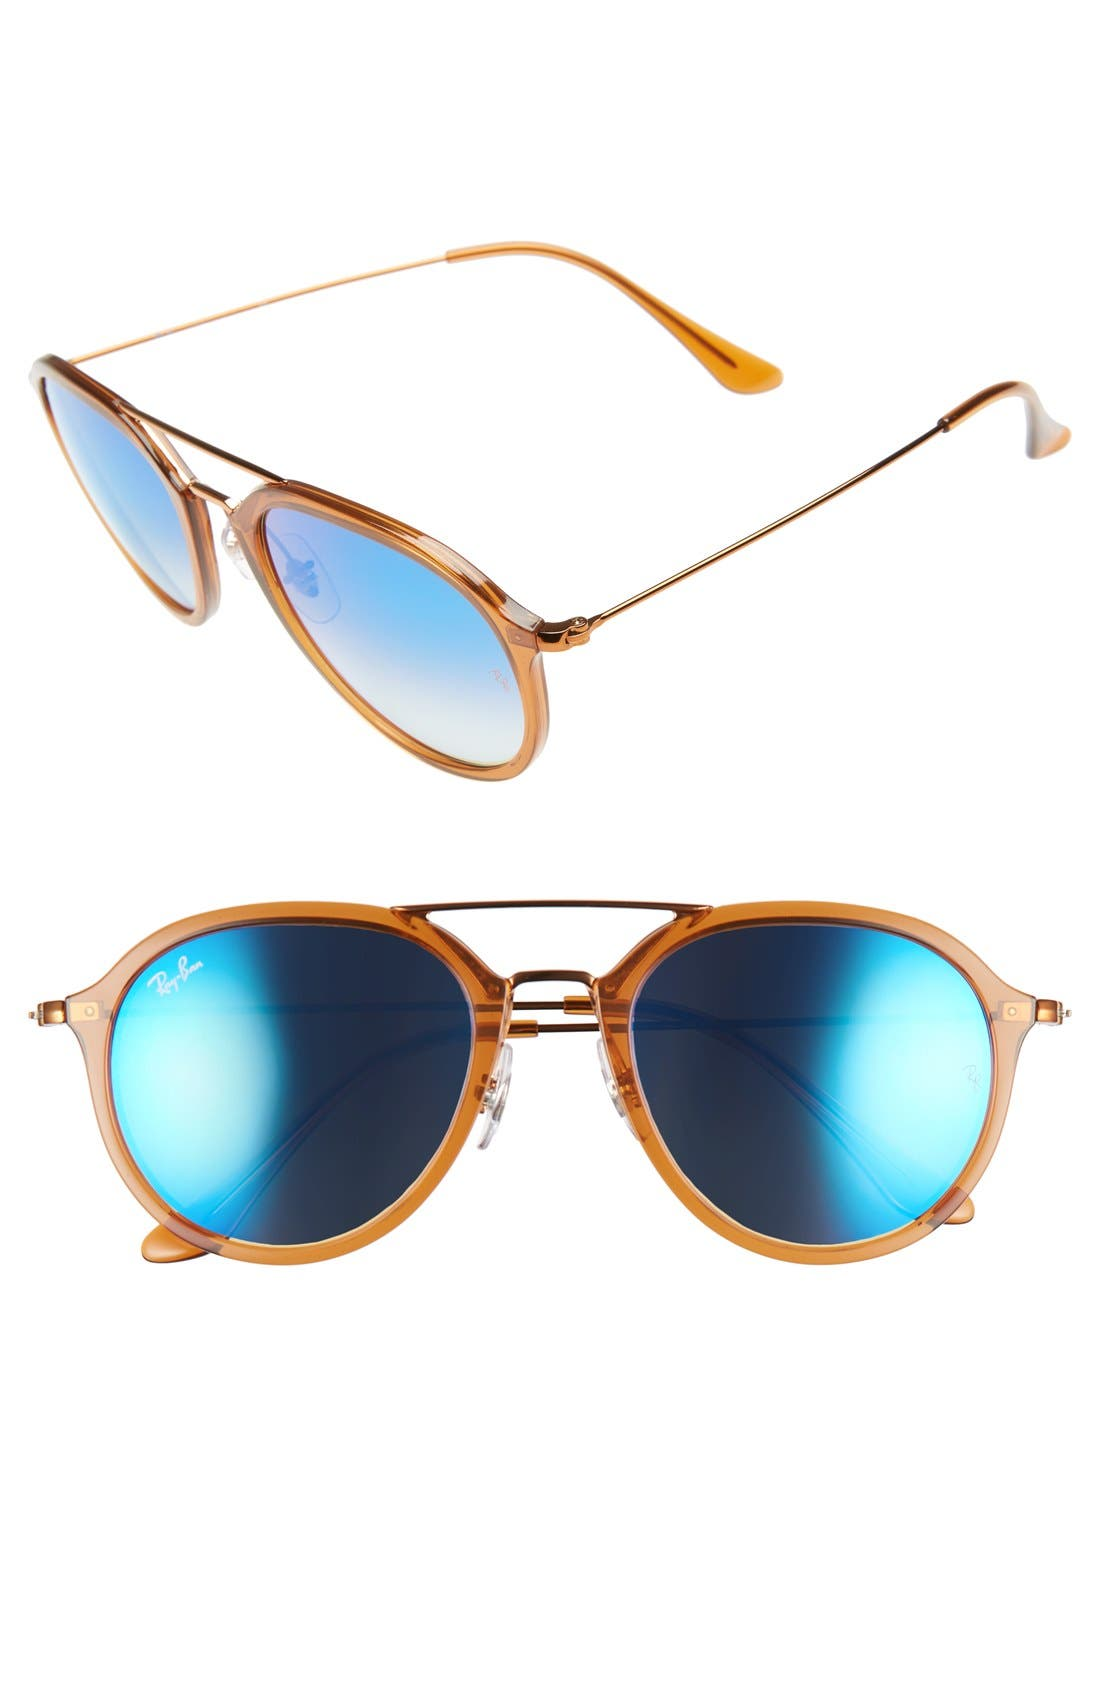 Main Image - Ray-Ban Youngster 53mm Aviator Sunglasses